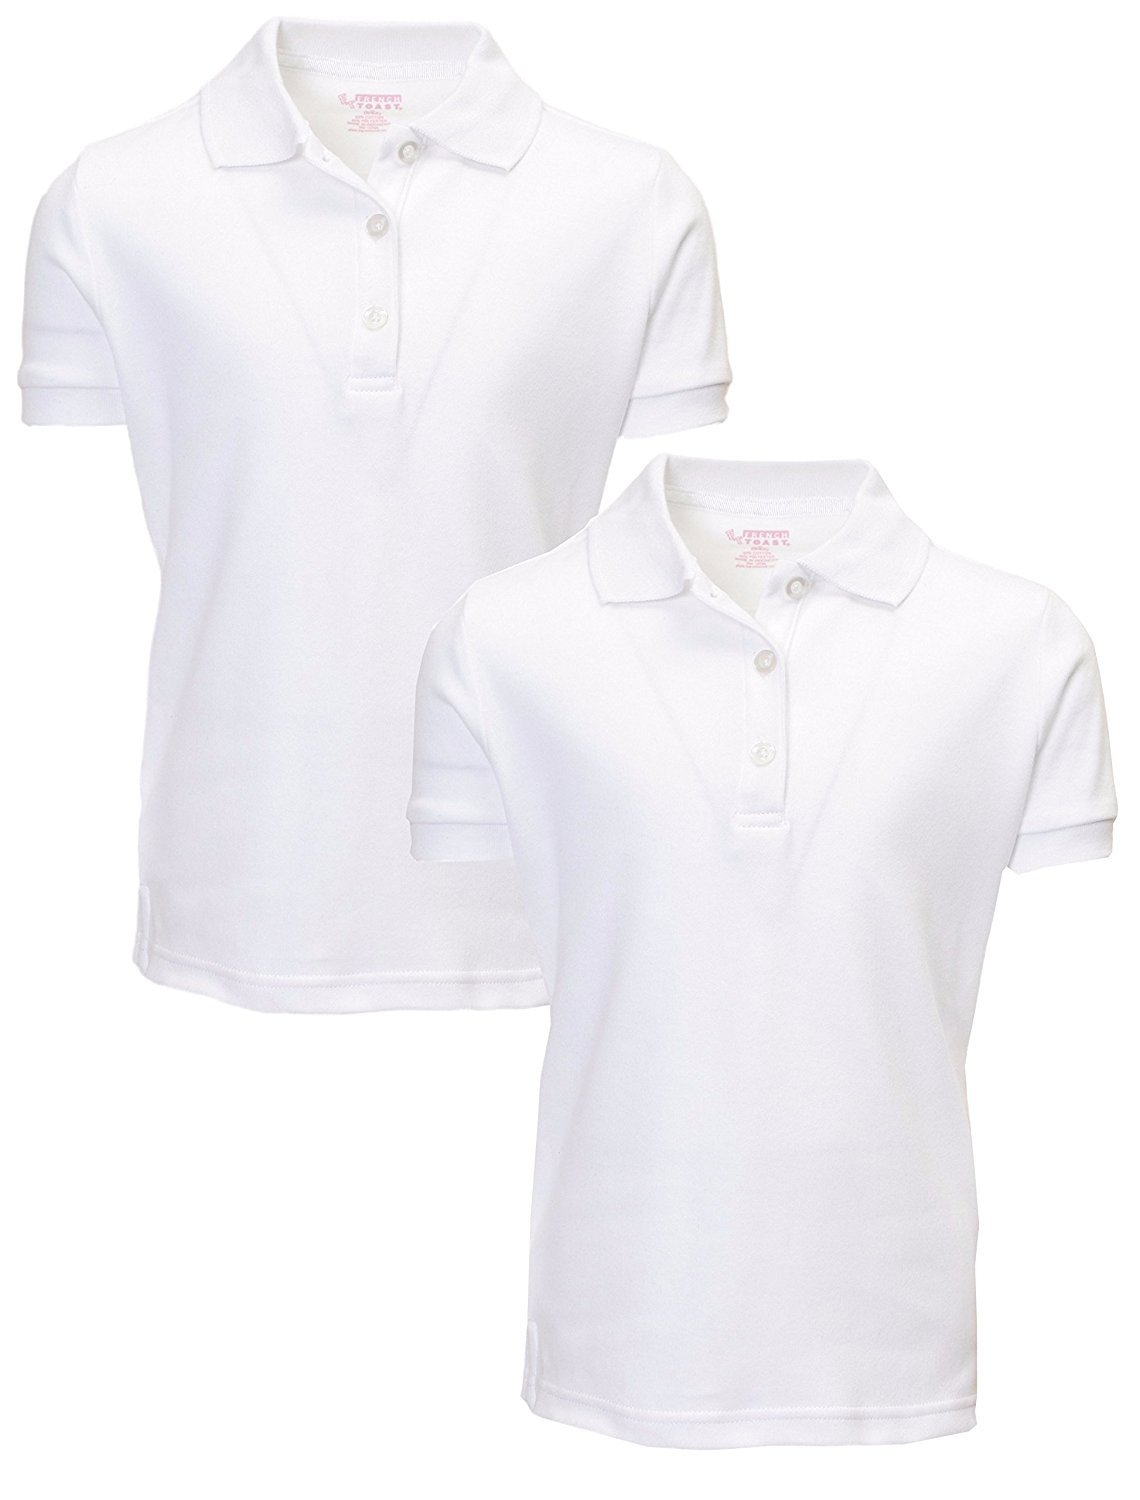 French Toast Girl's 2 Pack Uniform Short Sleeve Polo Shirts 6/6X White